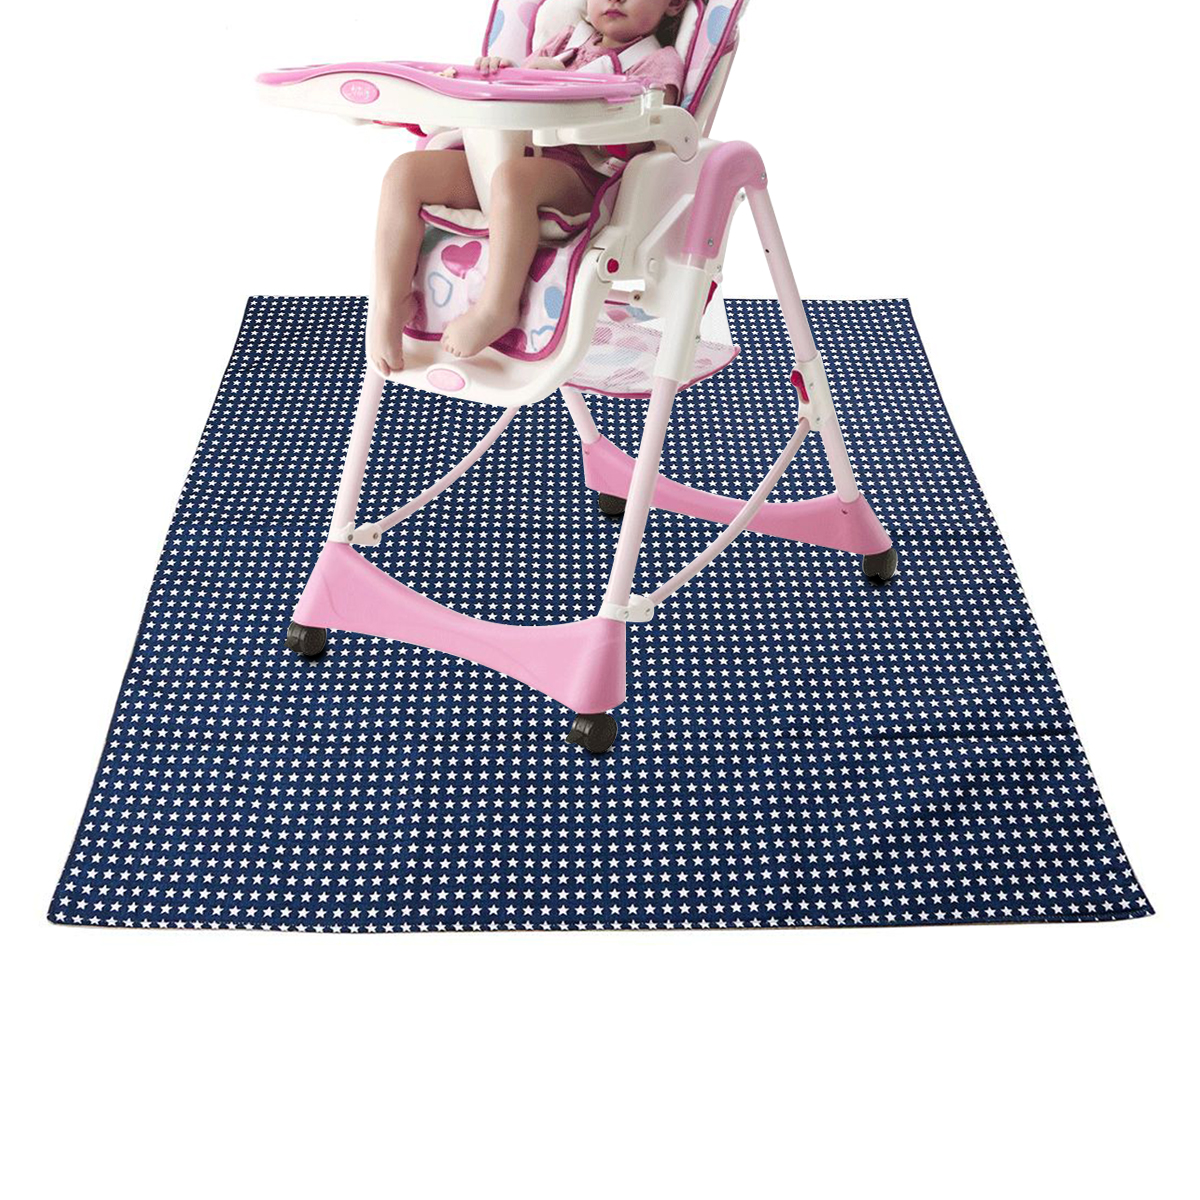 LBER Baby High Chair Floor Mat Protector Cover Washable